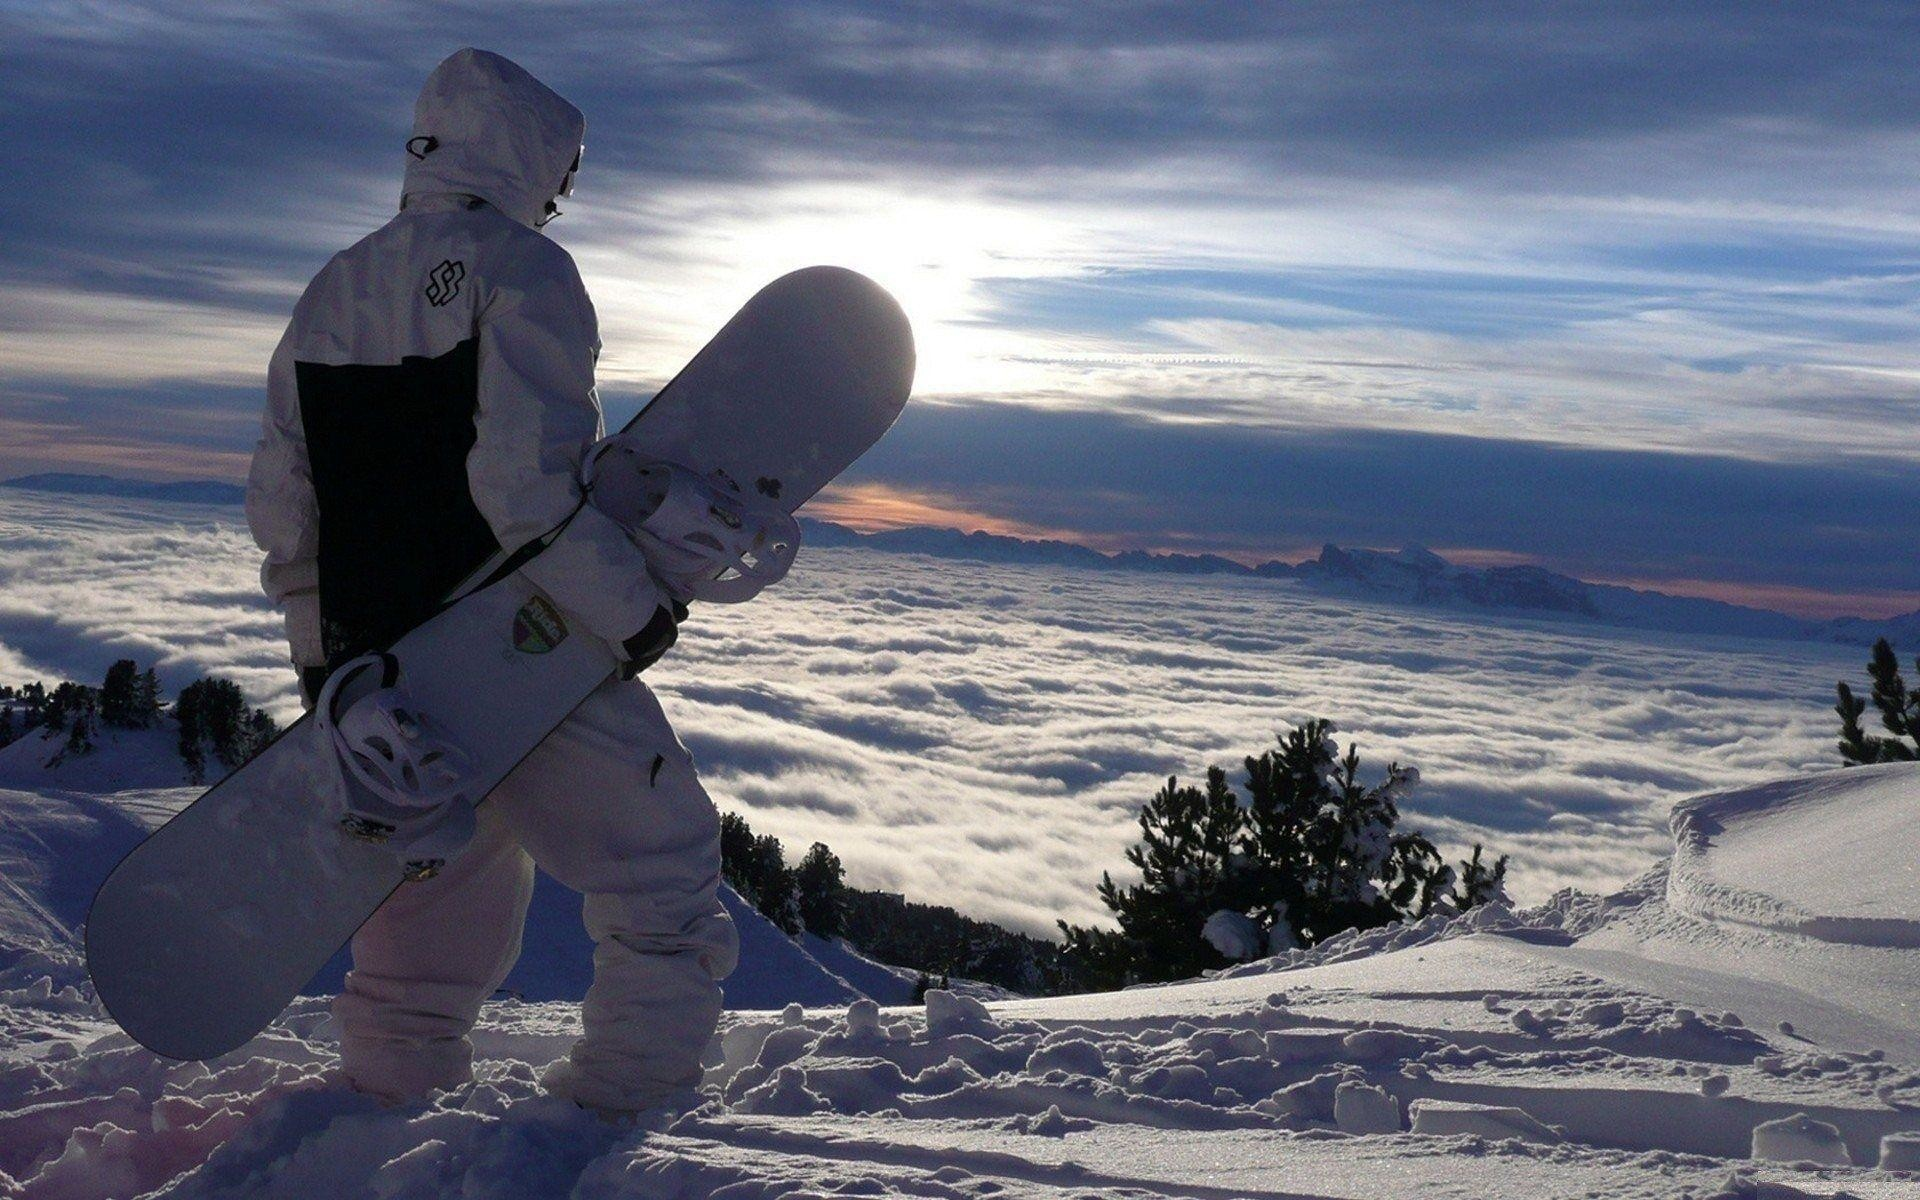 1920x1200 - Snowboarding Wallpapers 15